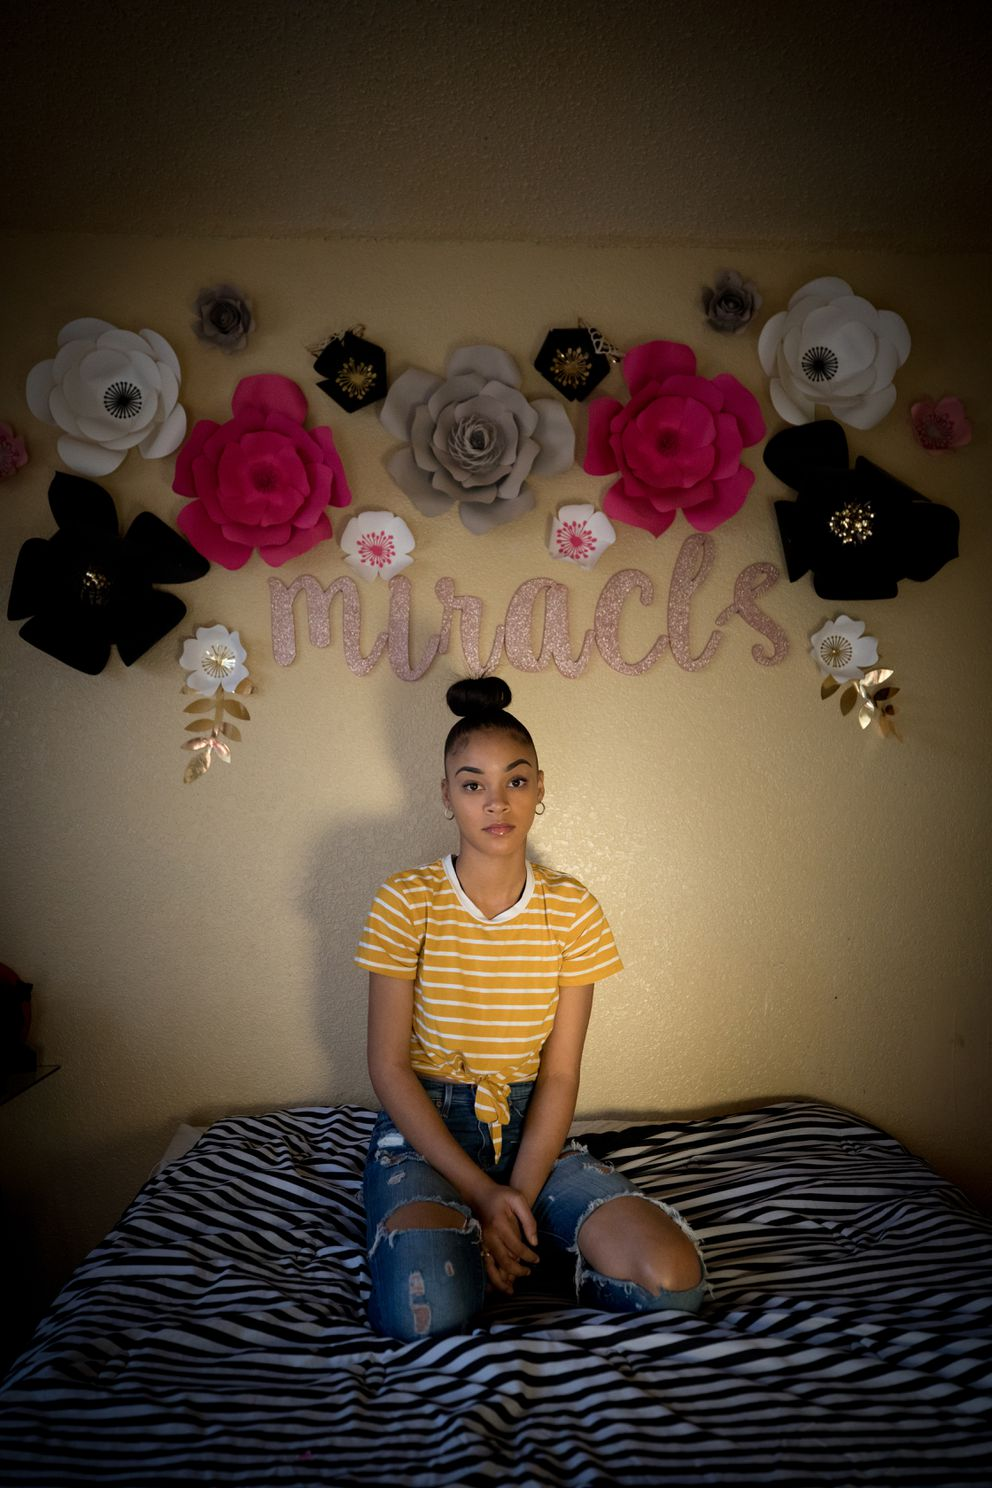 Miracle Slover, 17, is shown at home in Fort Worth, Texas, on Nov. 23, 2019. (Photo for The Washington Post by Allison V. Smith)